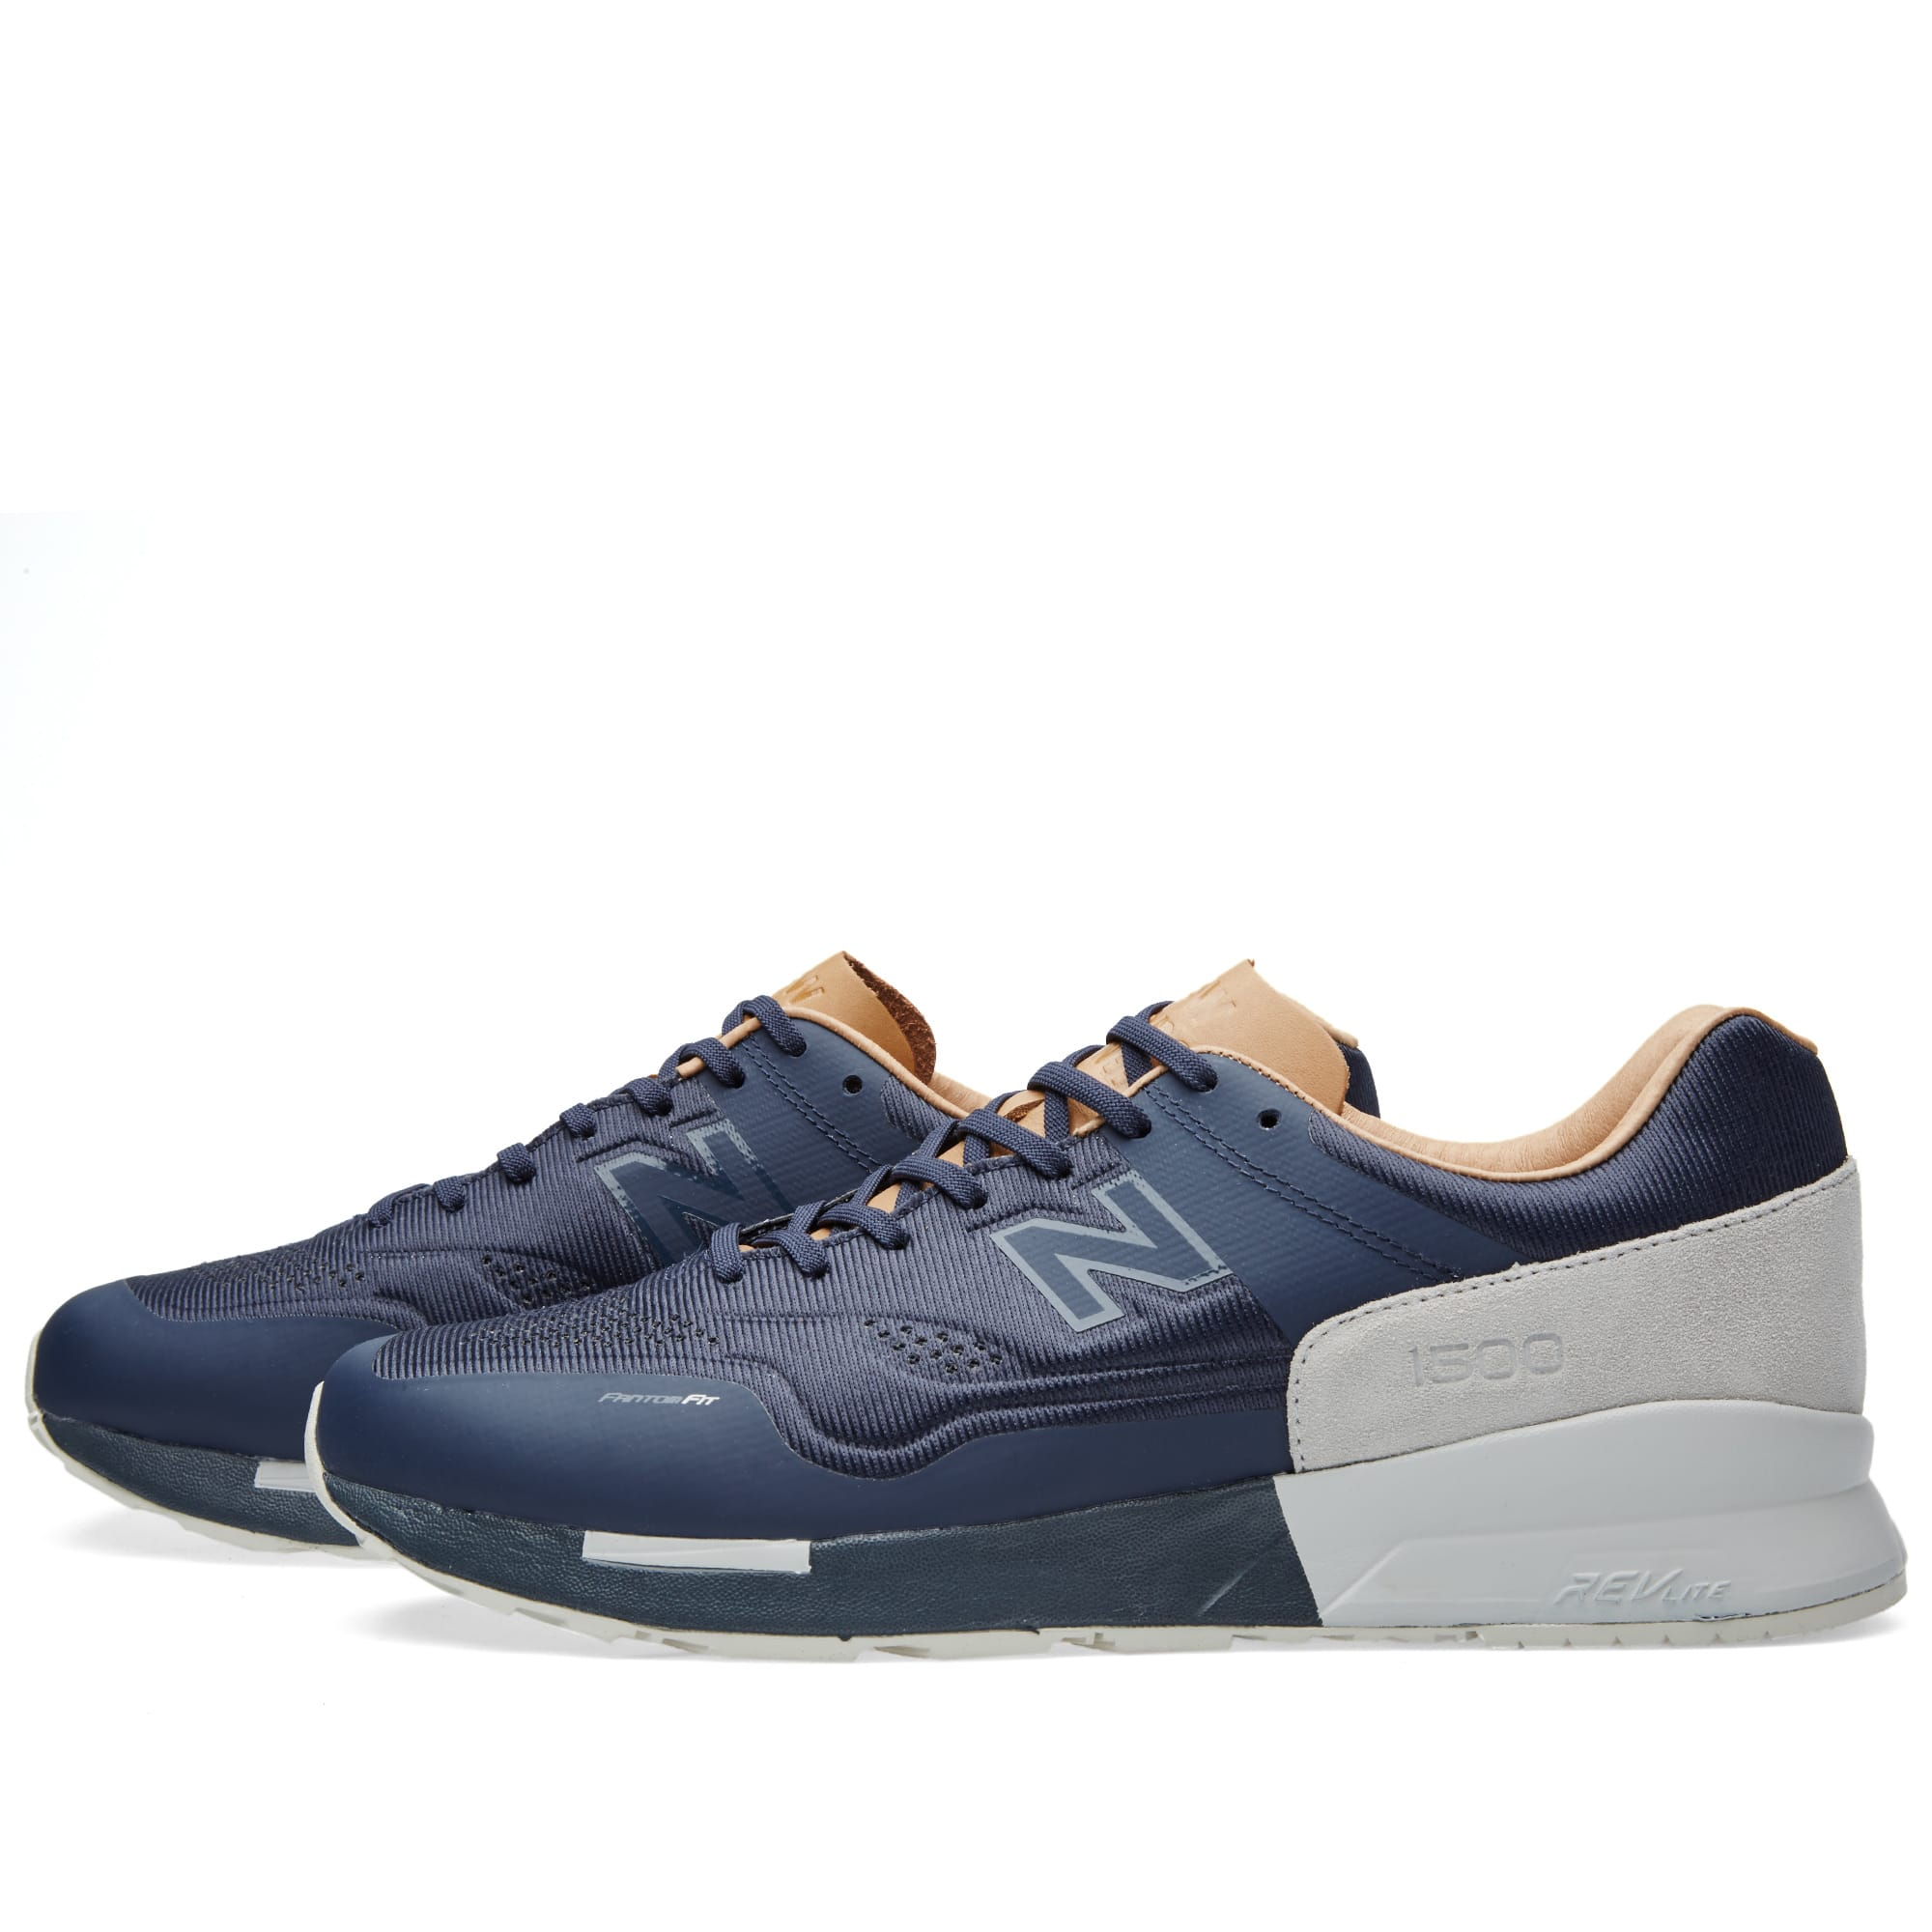 new product c5acf 2c037 New Balance MD1500FN Re-Engineered